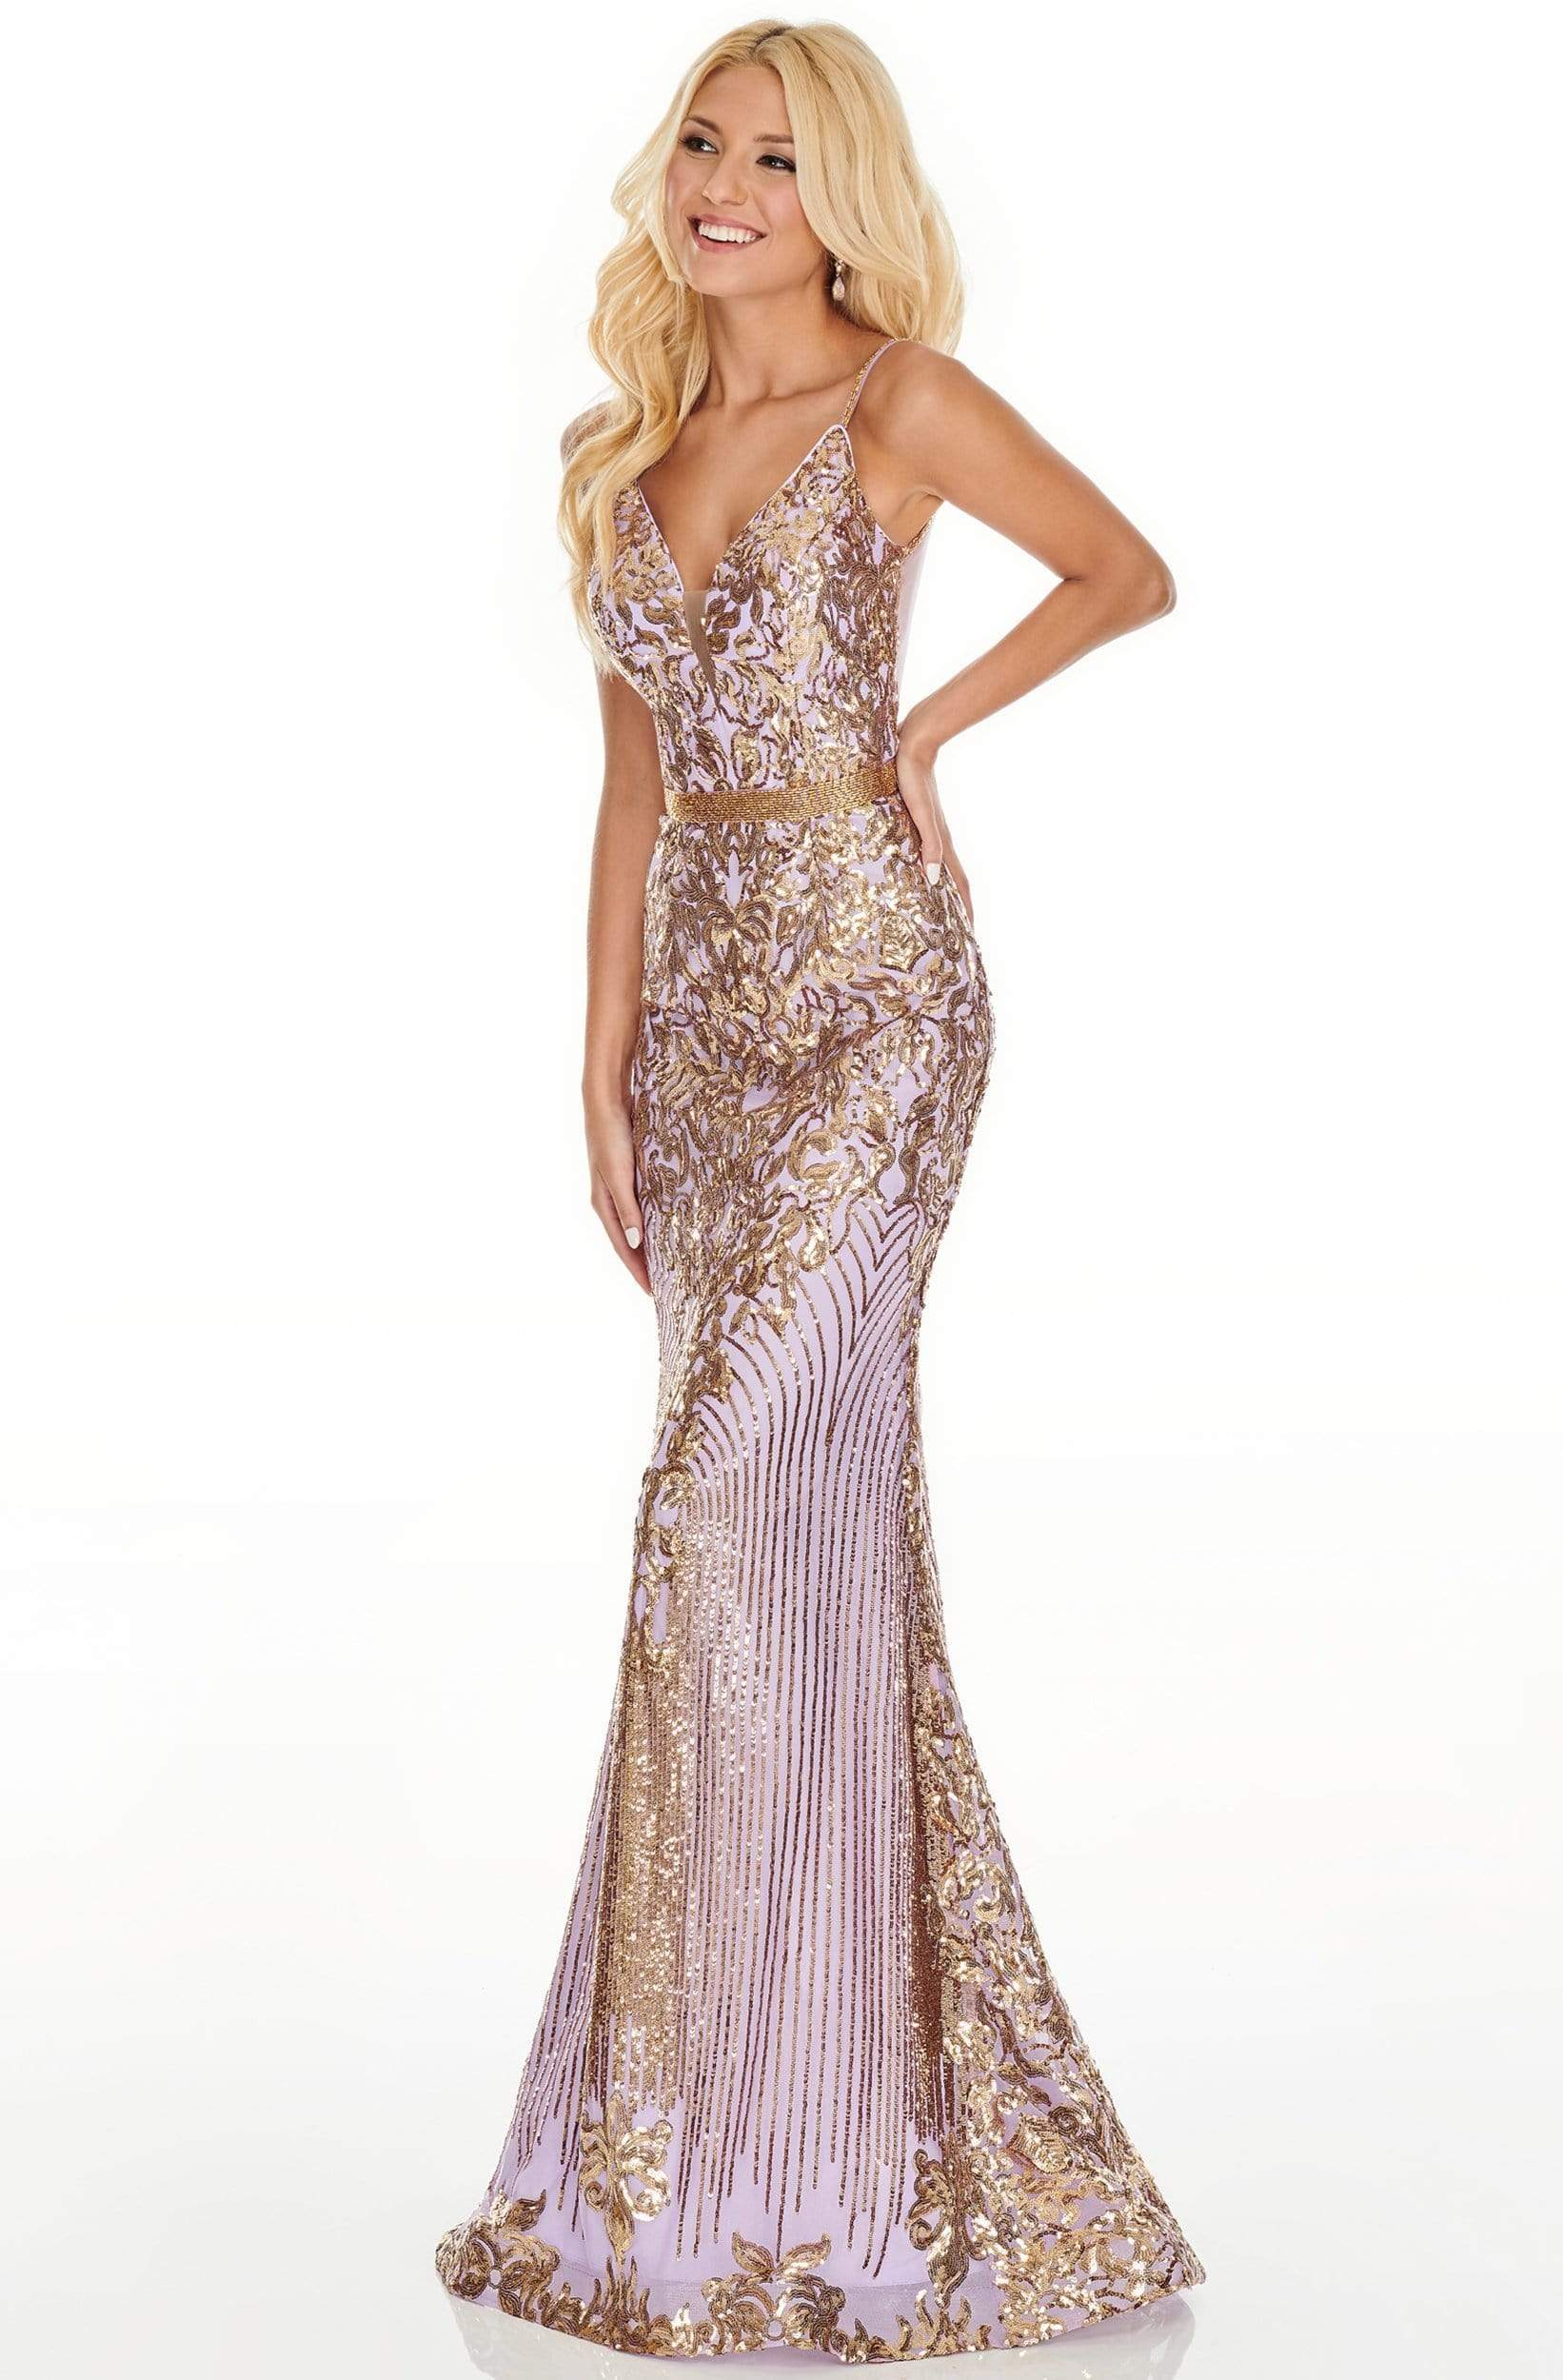 Rachel Allan Prom - 7177 Sequined Deep V-Neck Trumpet Dress Prom Dresses 0 / Lilac Gold